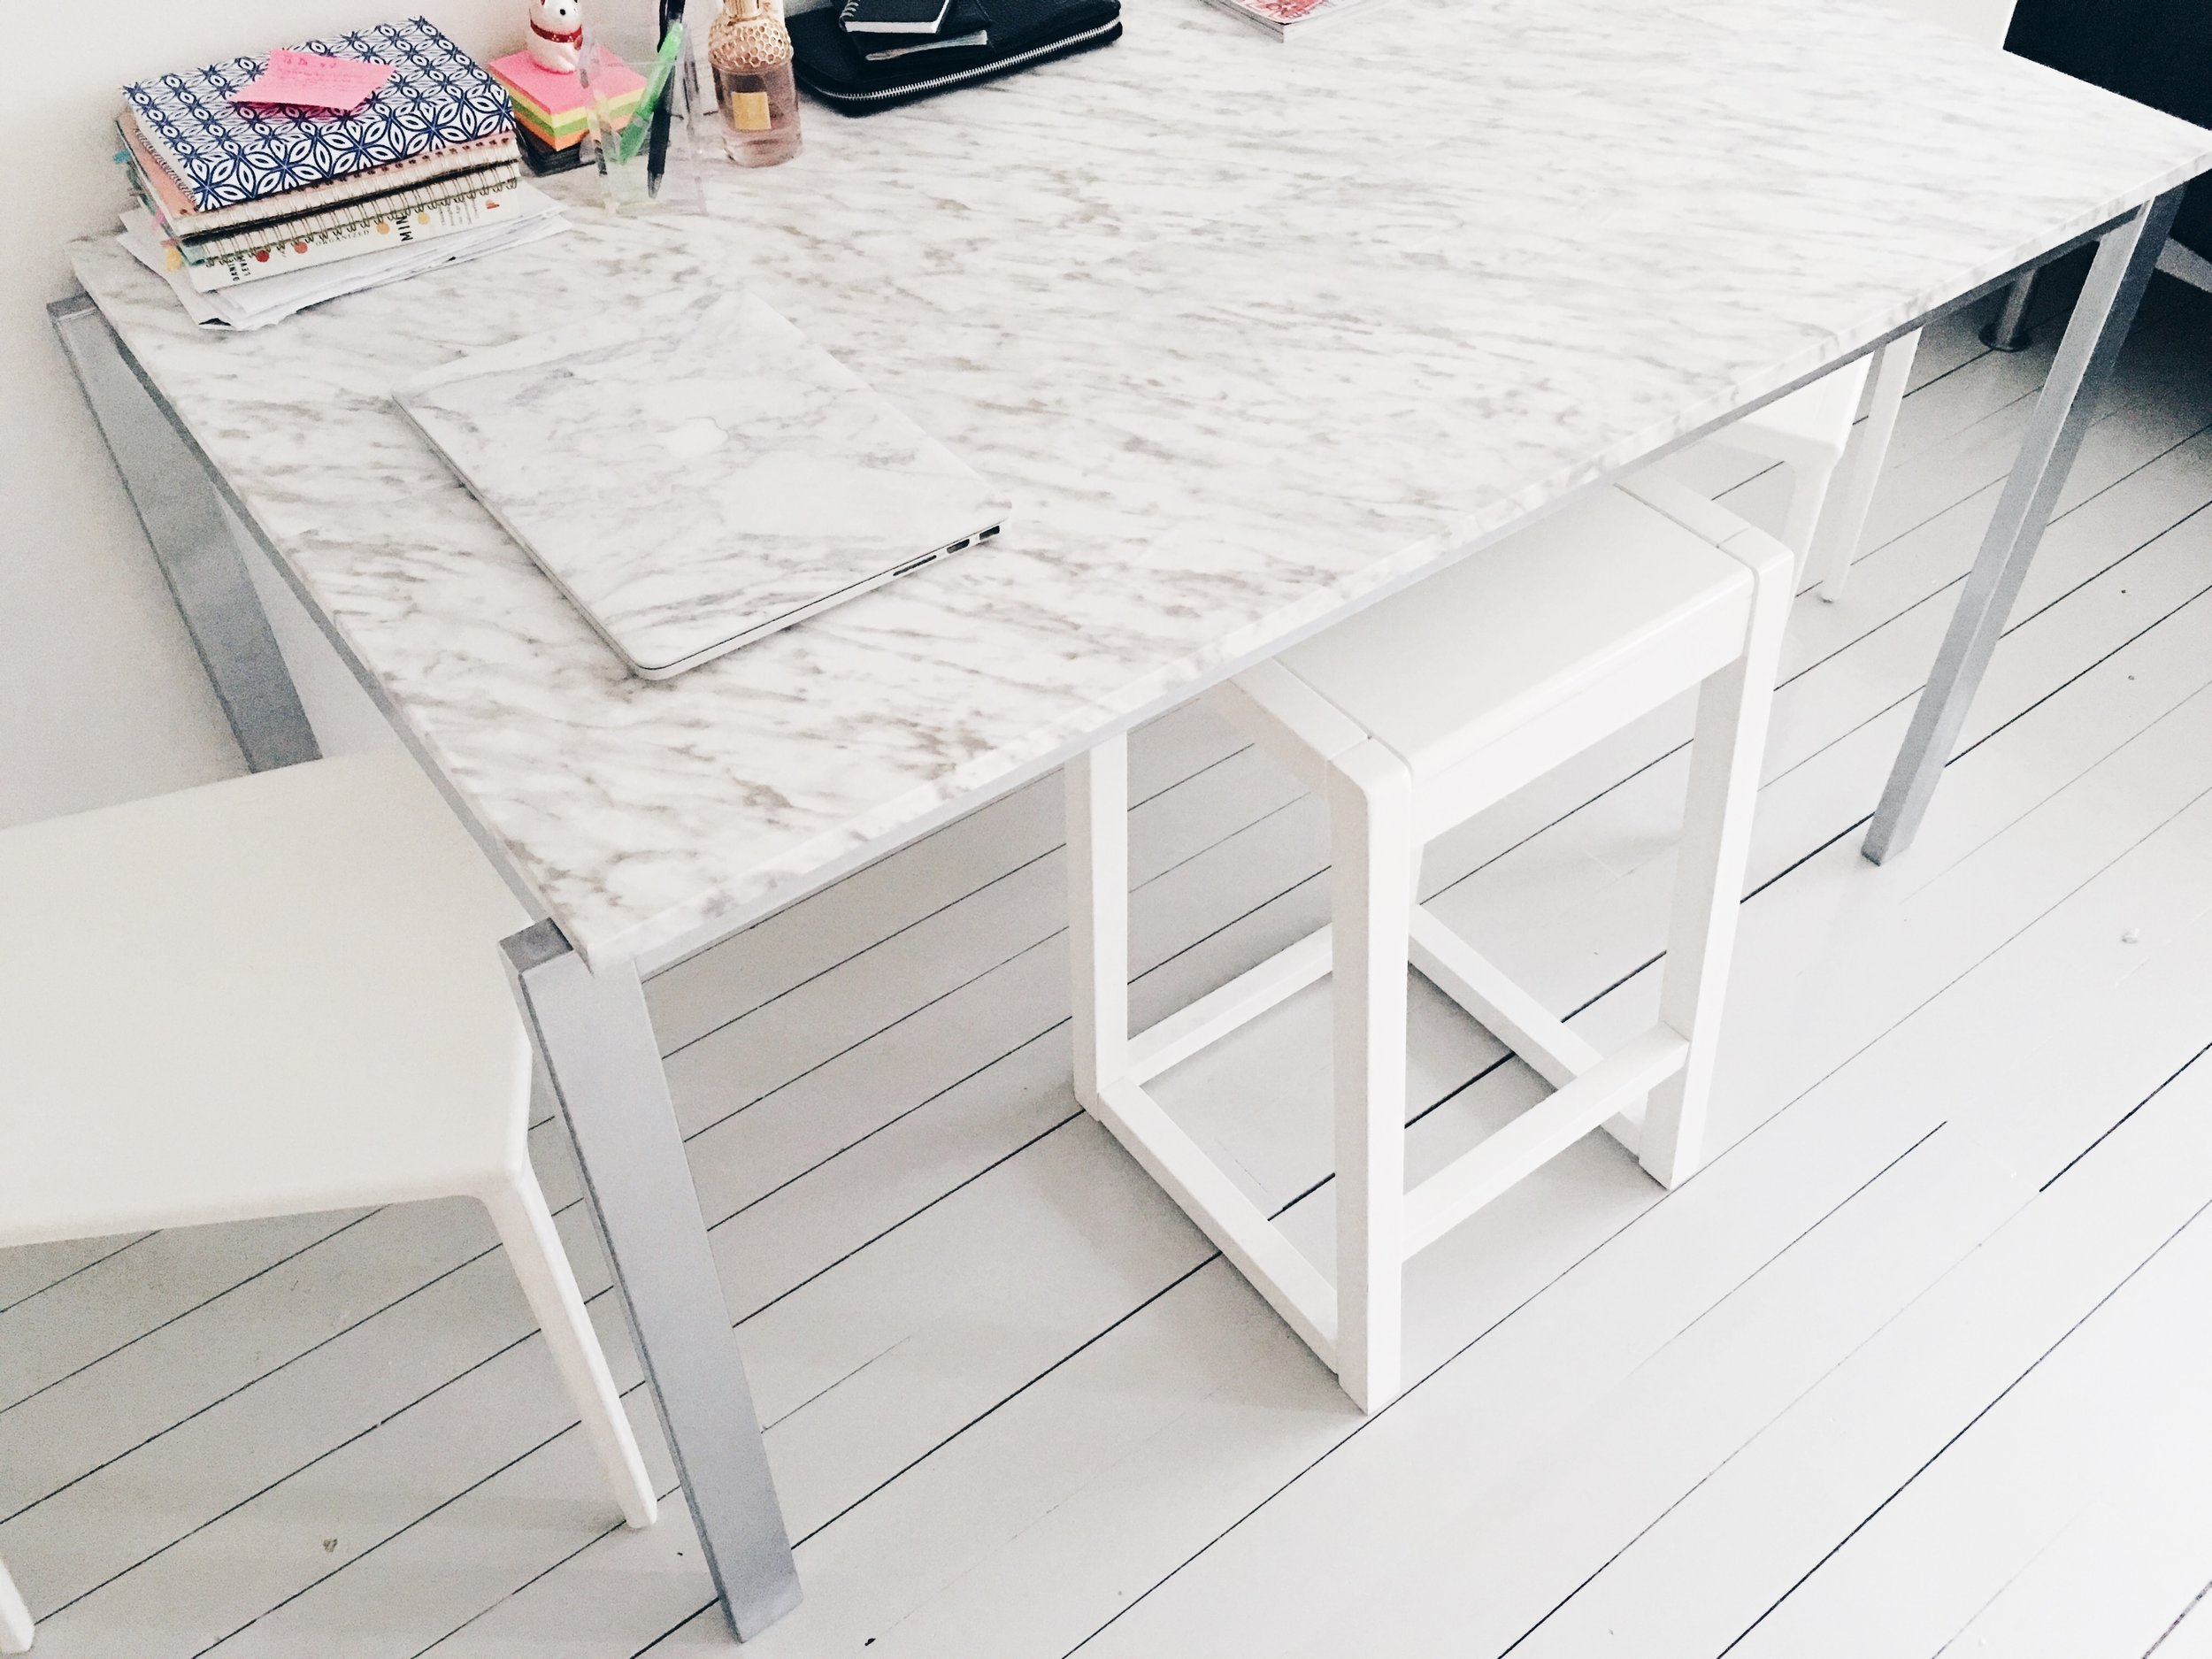 Ikea Melltorp table DIY